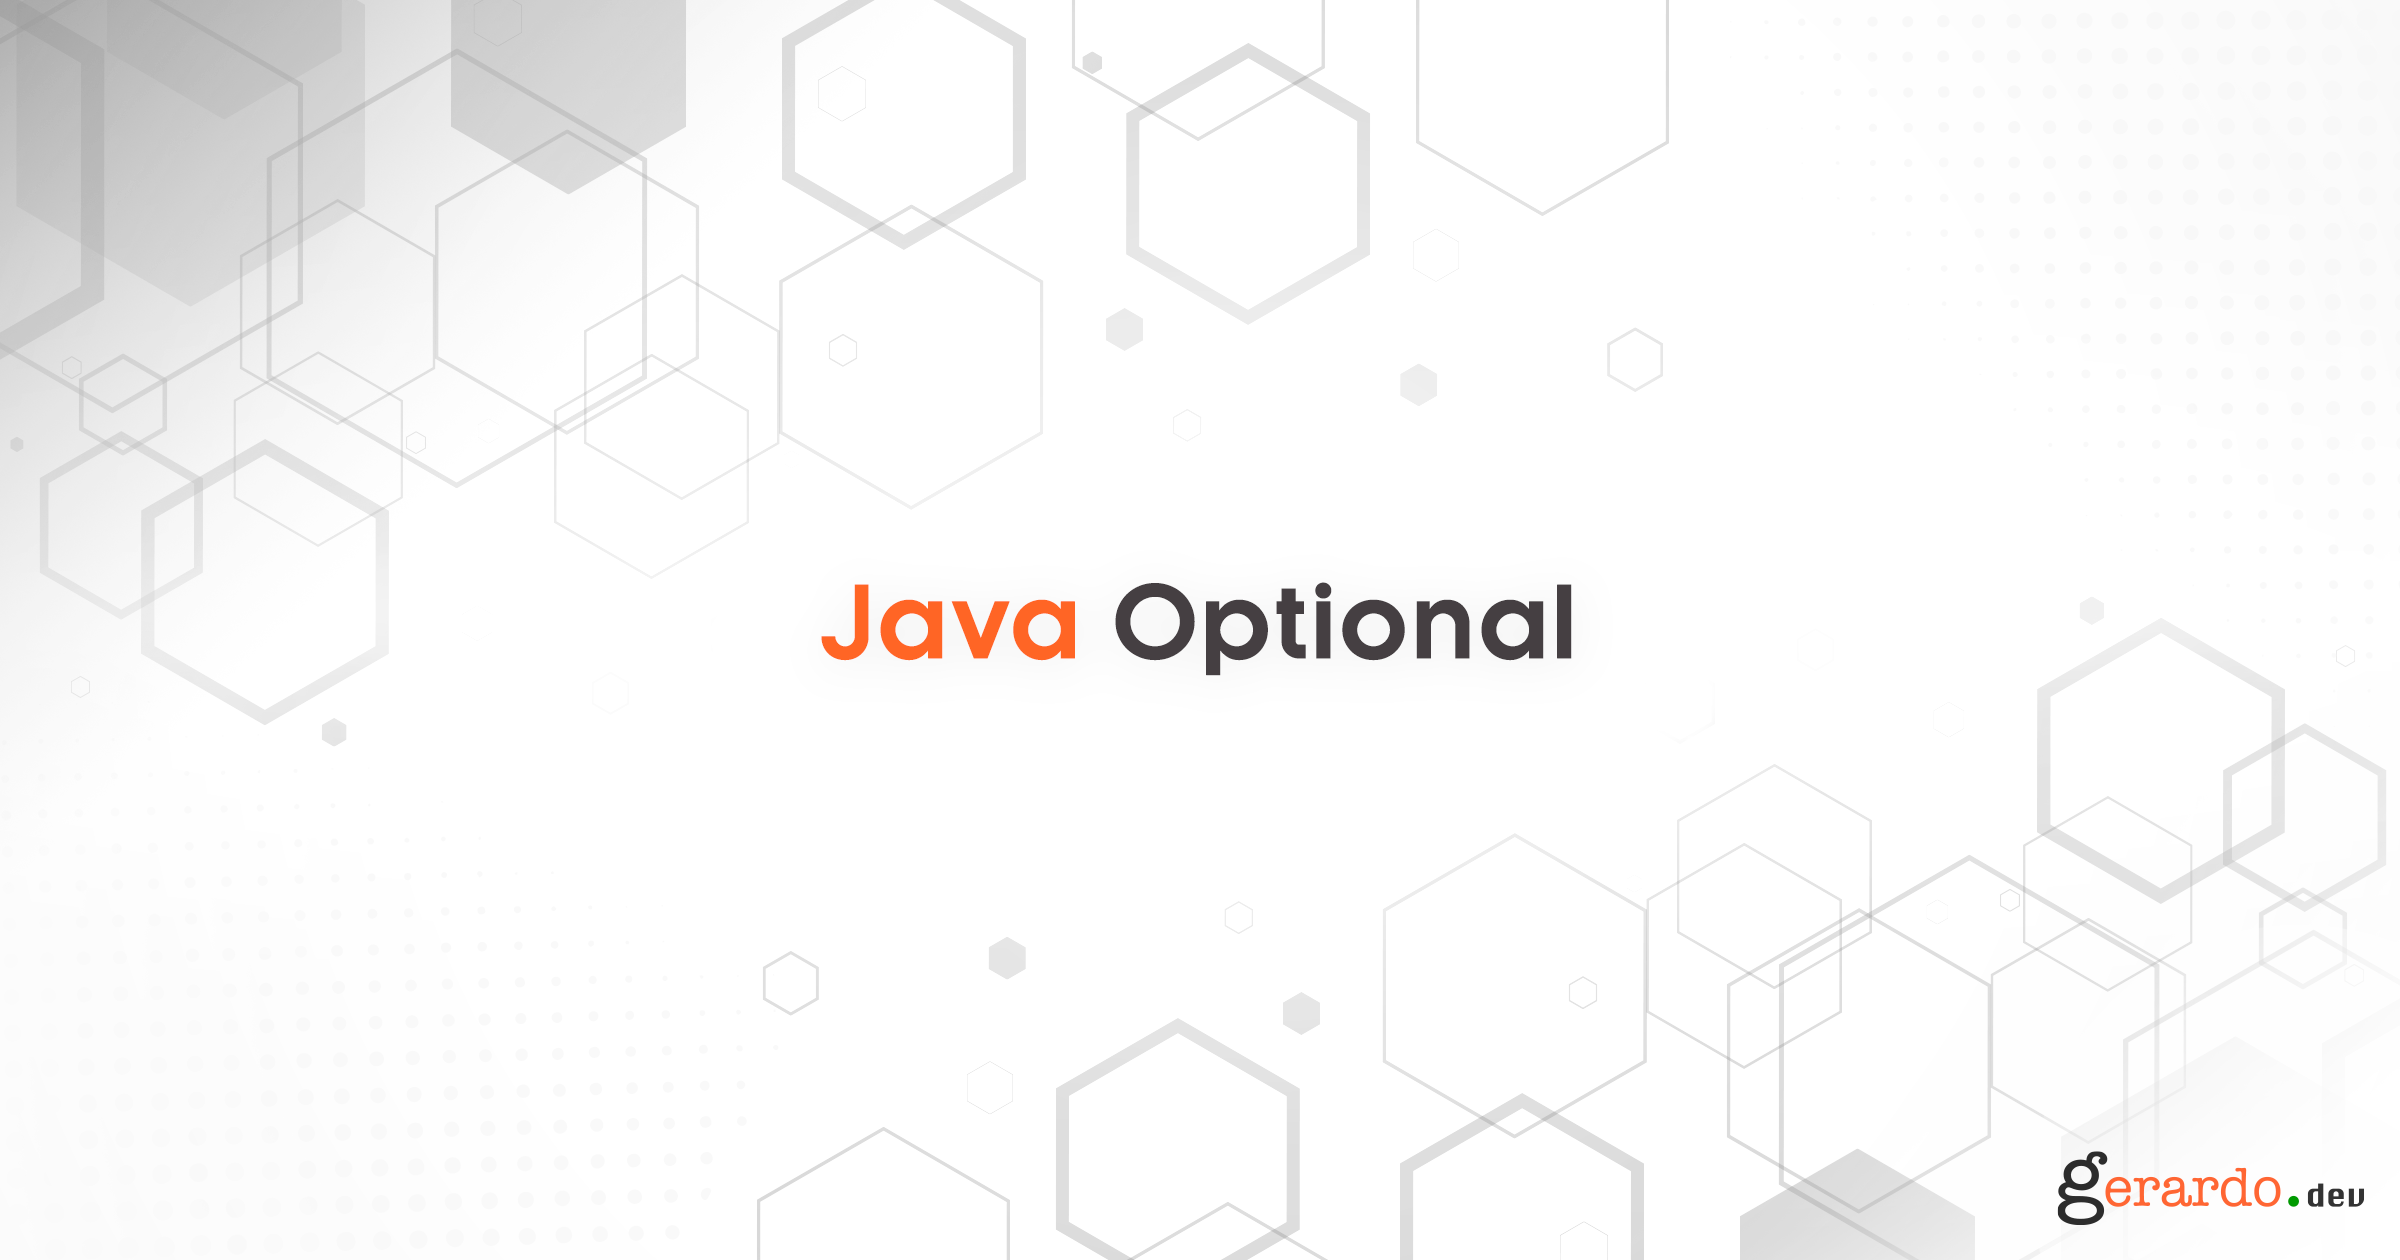 Java Optional